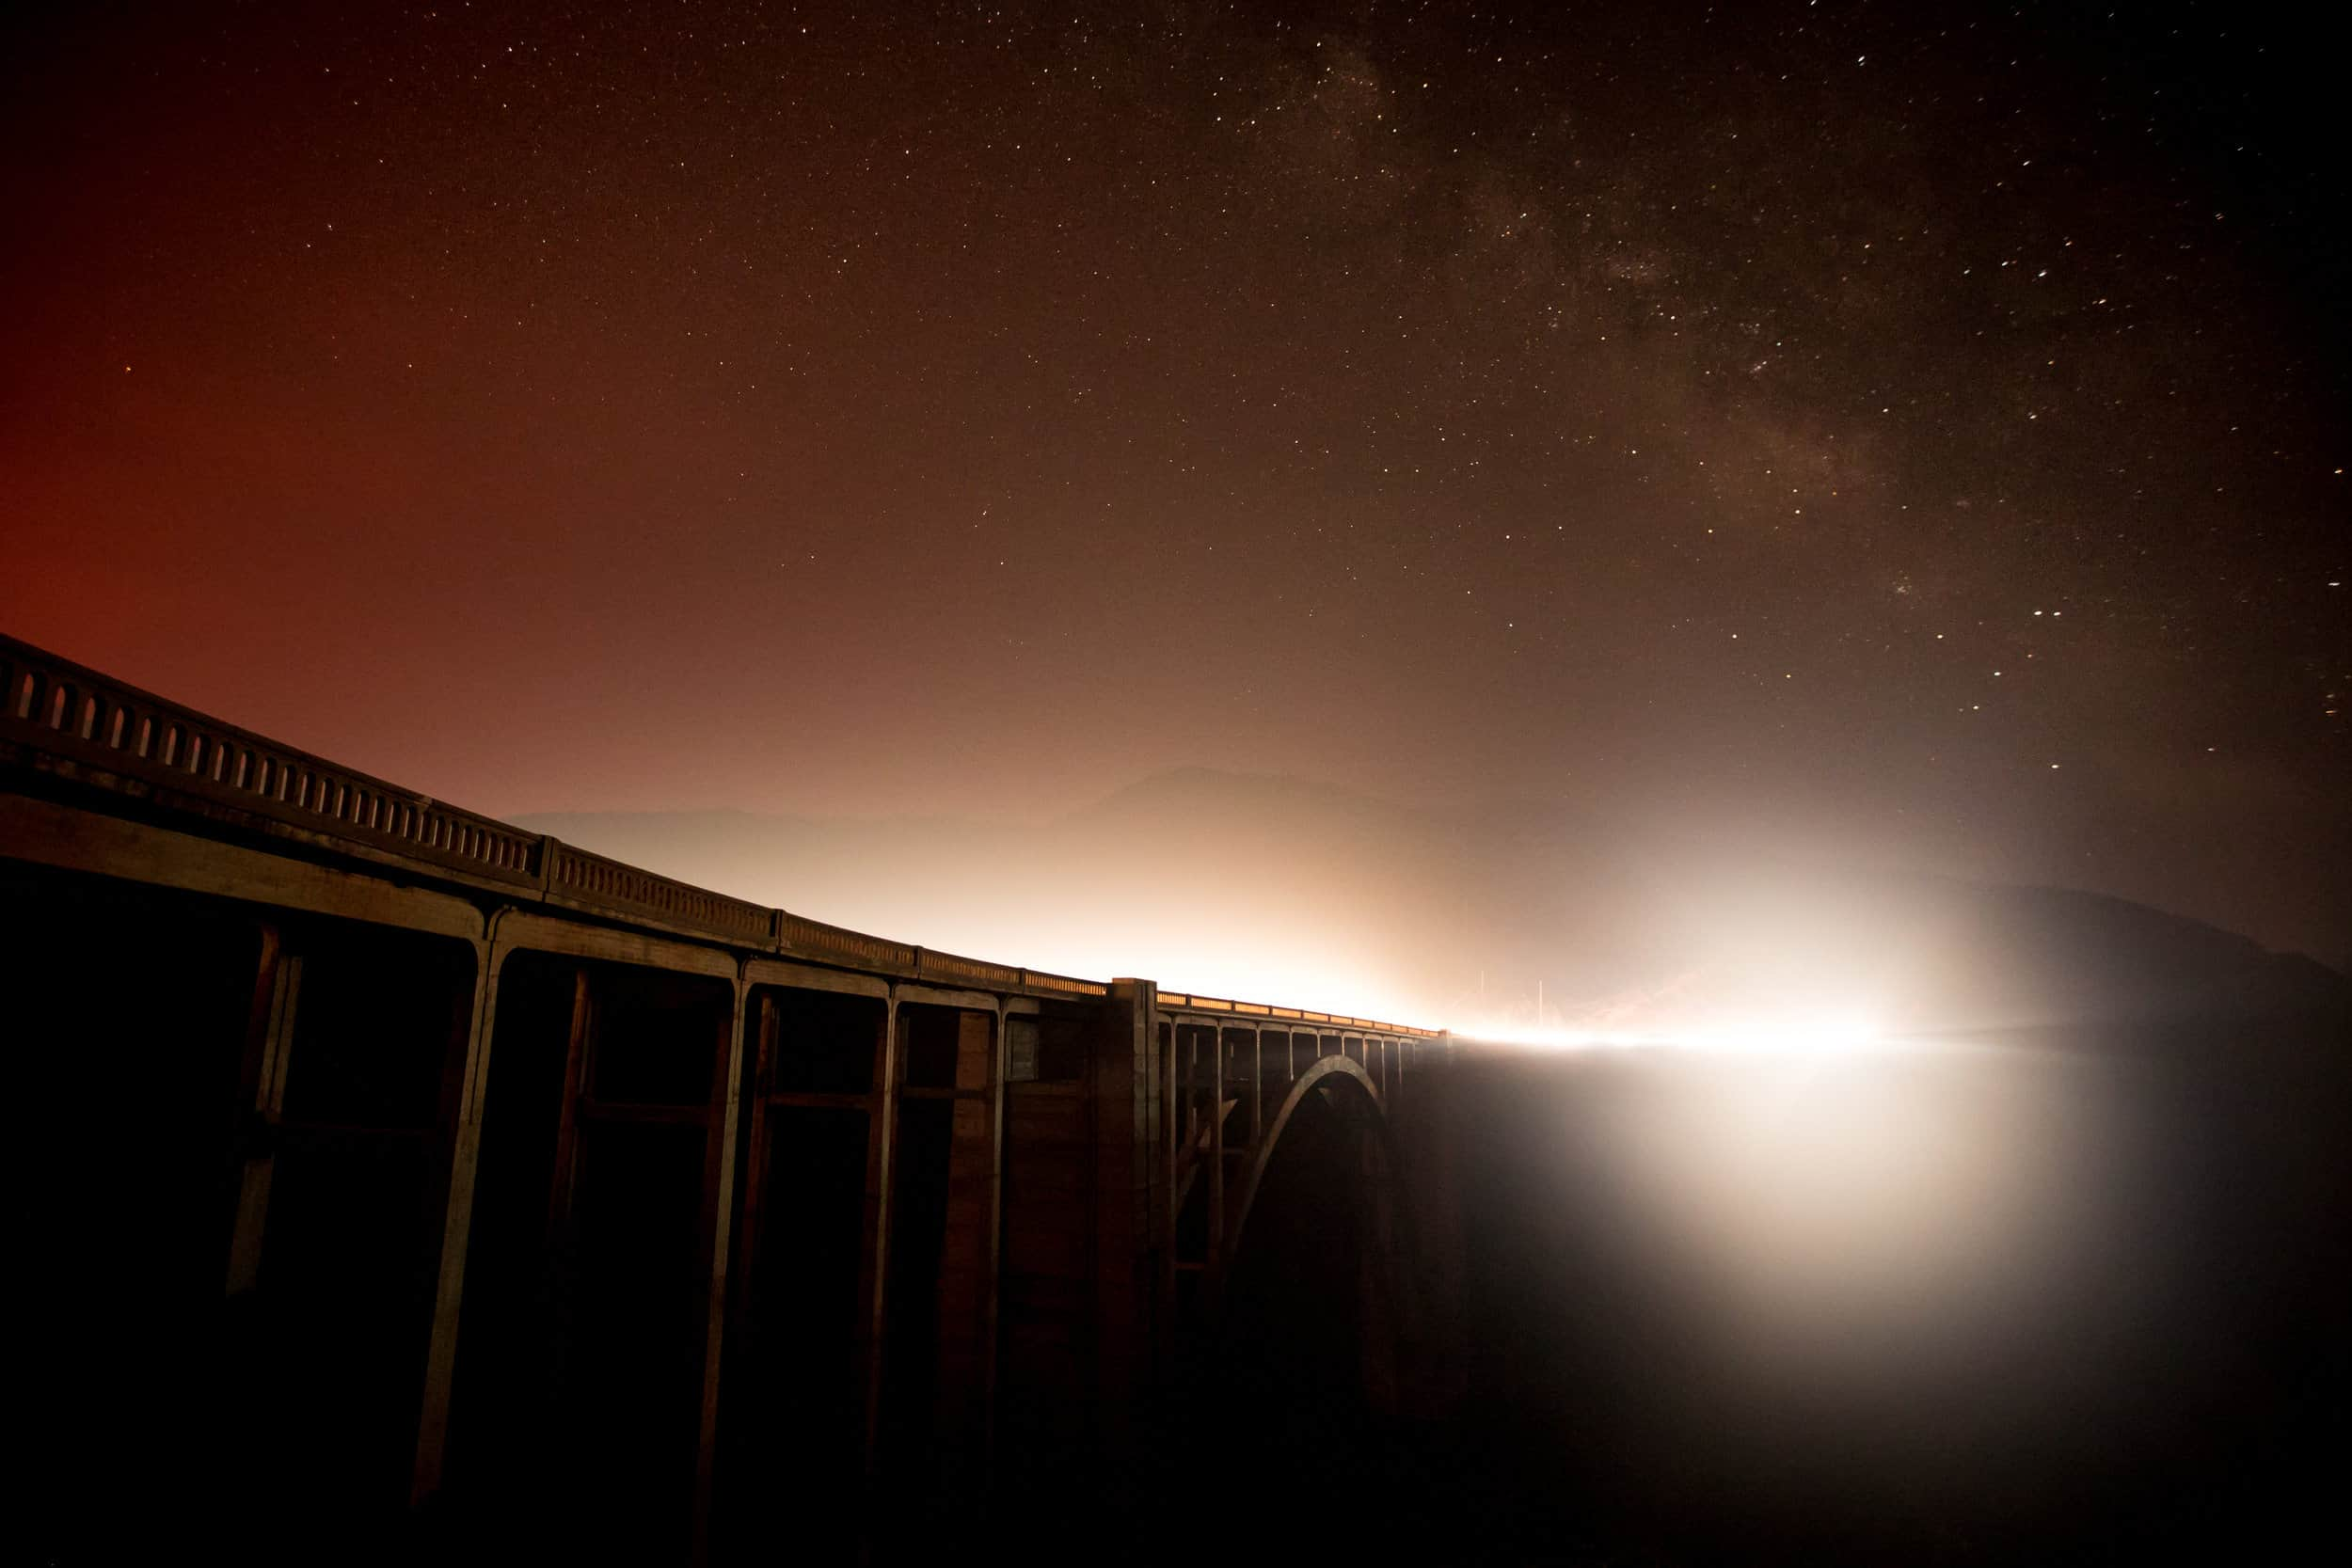 Big_Sur_Bridge_At_Night_Photography_By_Marcus_Meisler.jpg